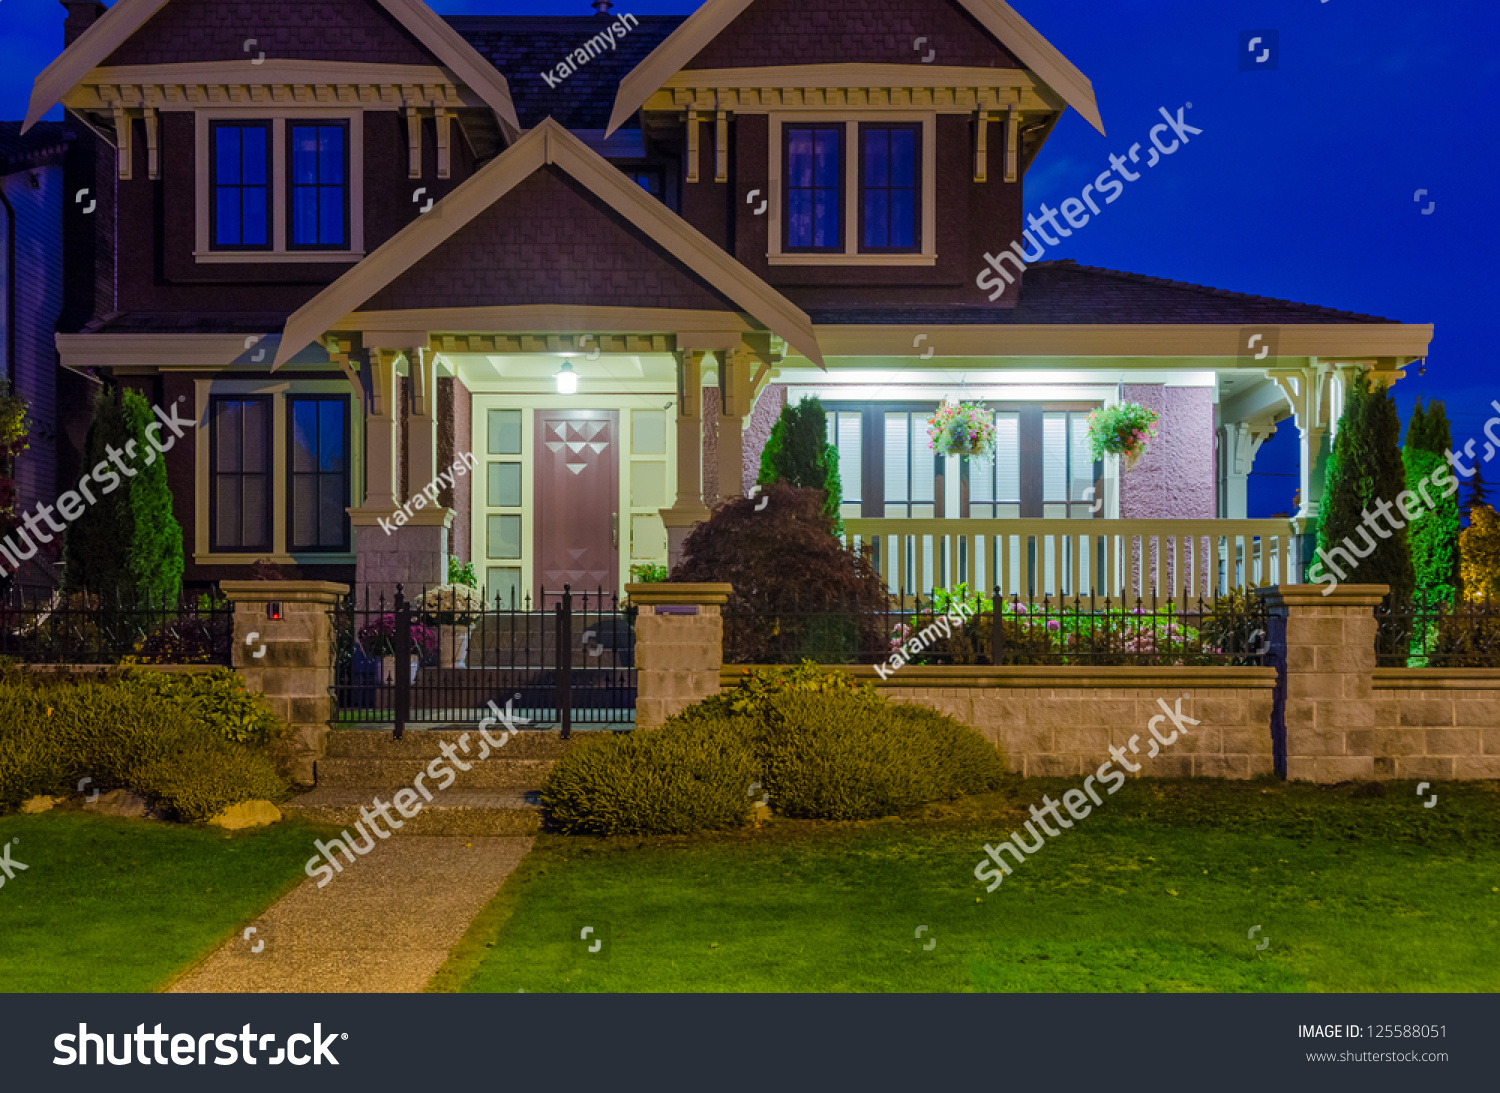 Luxury House At Night In Vancouver Canada Stock Photo 125588051